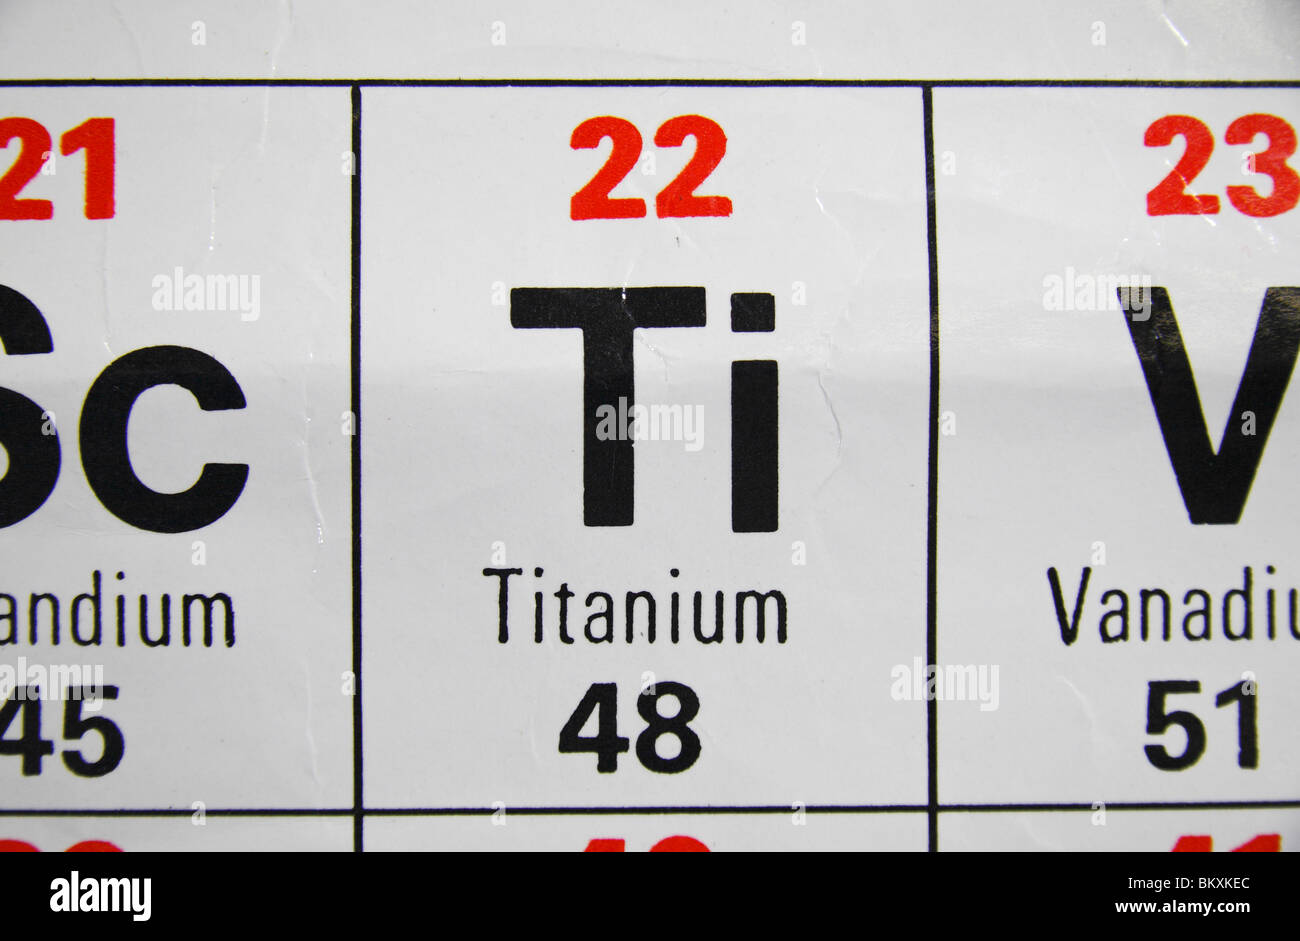 Close up view of a standard UK high school periodic table, focusing on the metal Titanium. - Stock Image